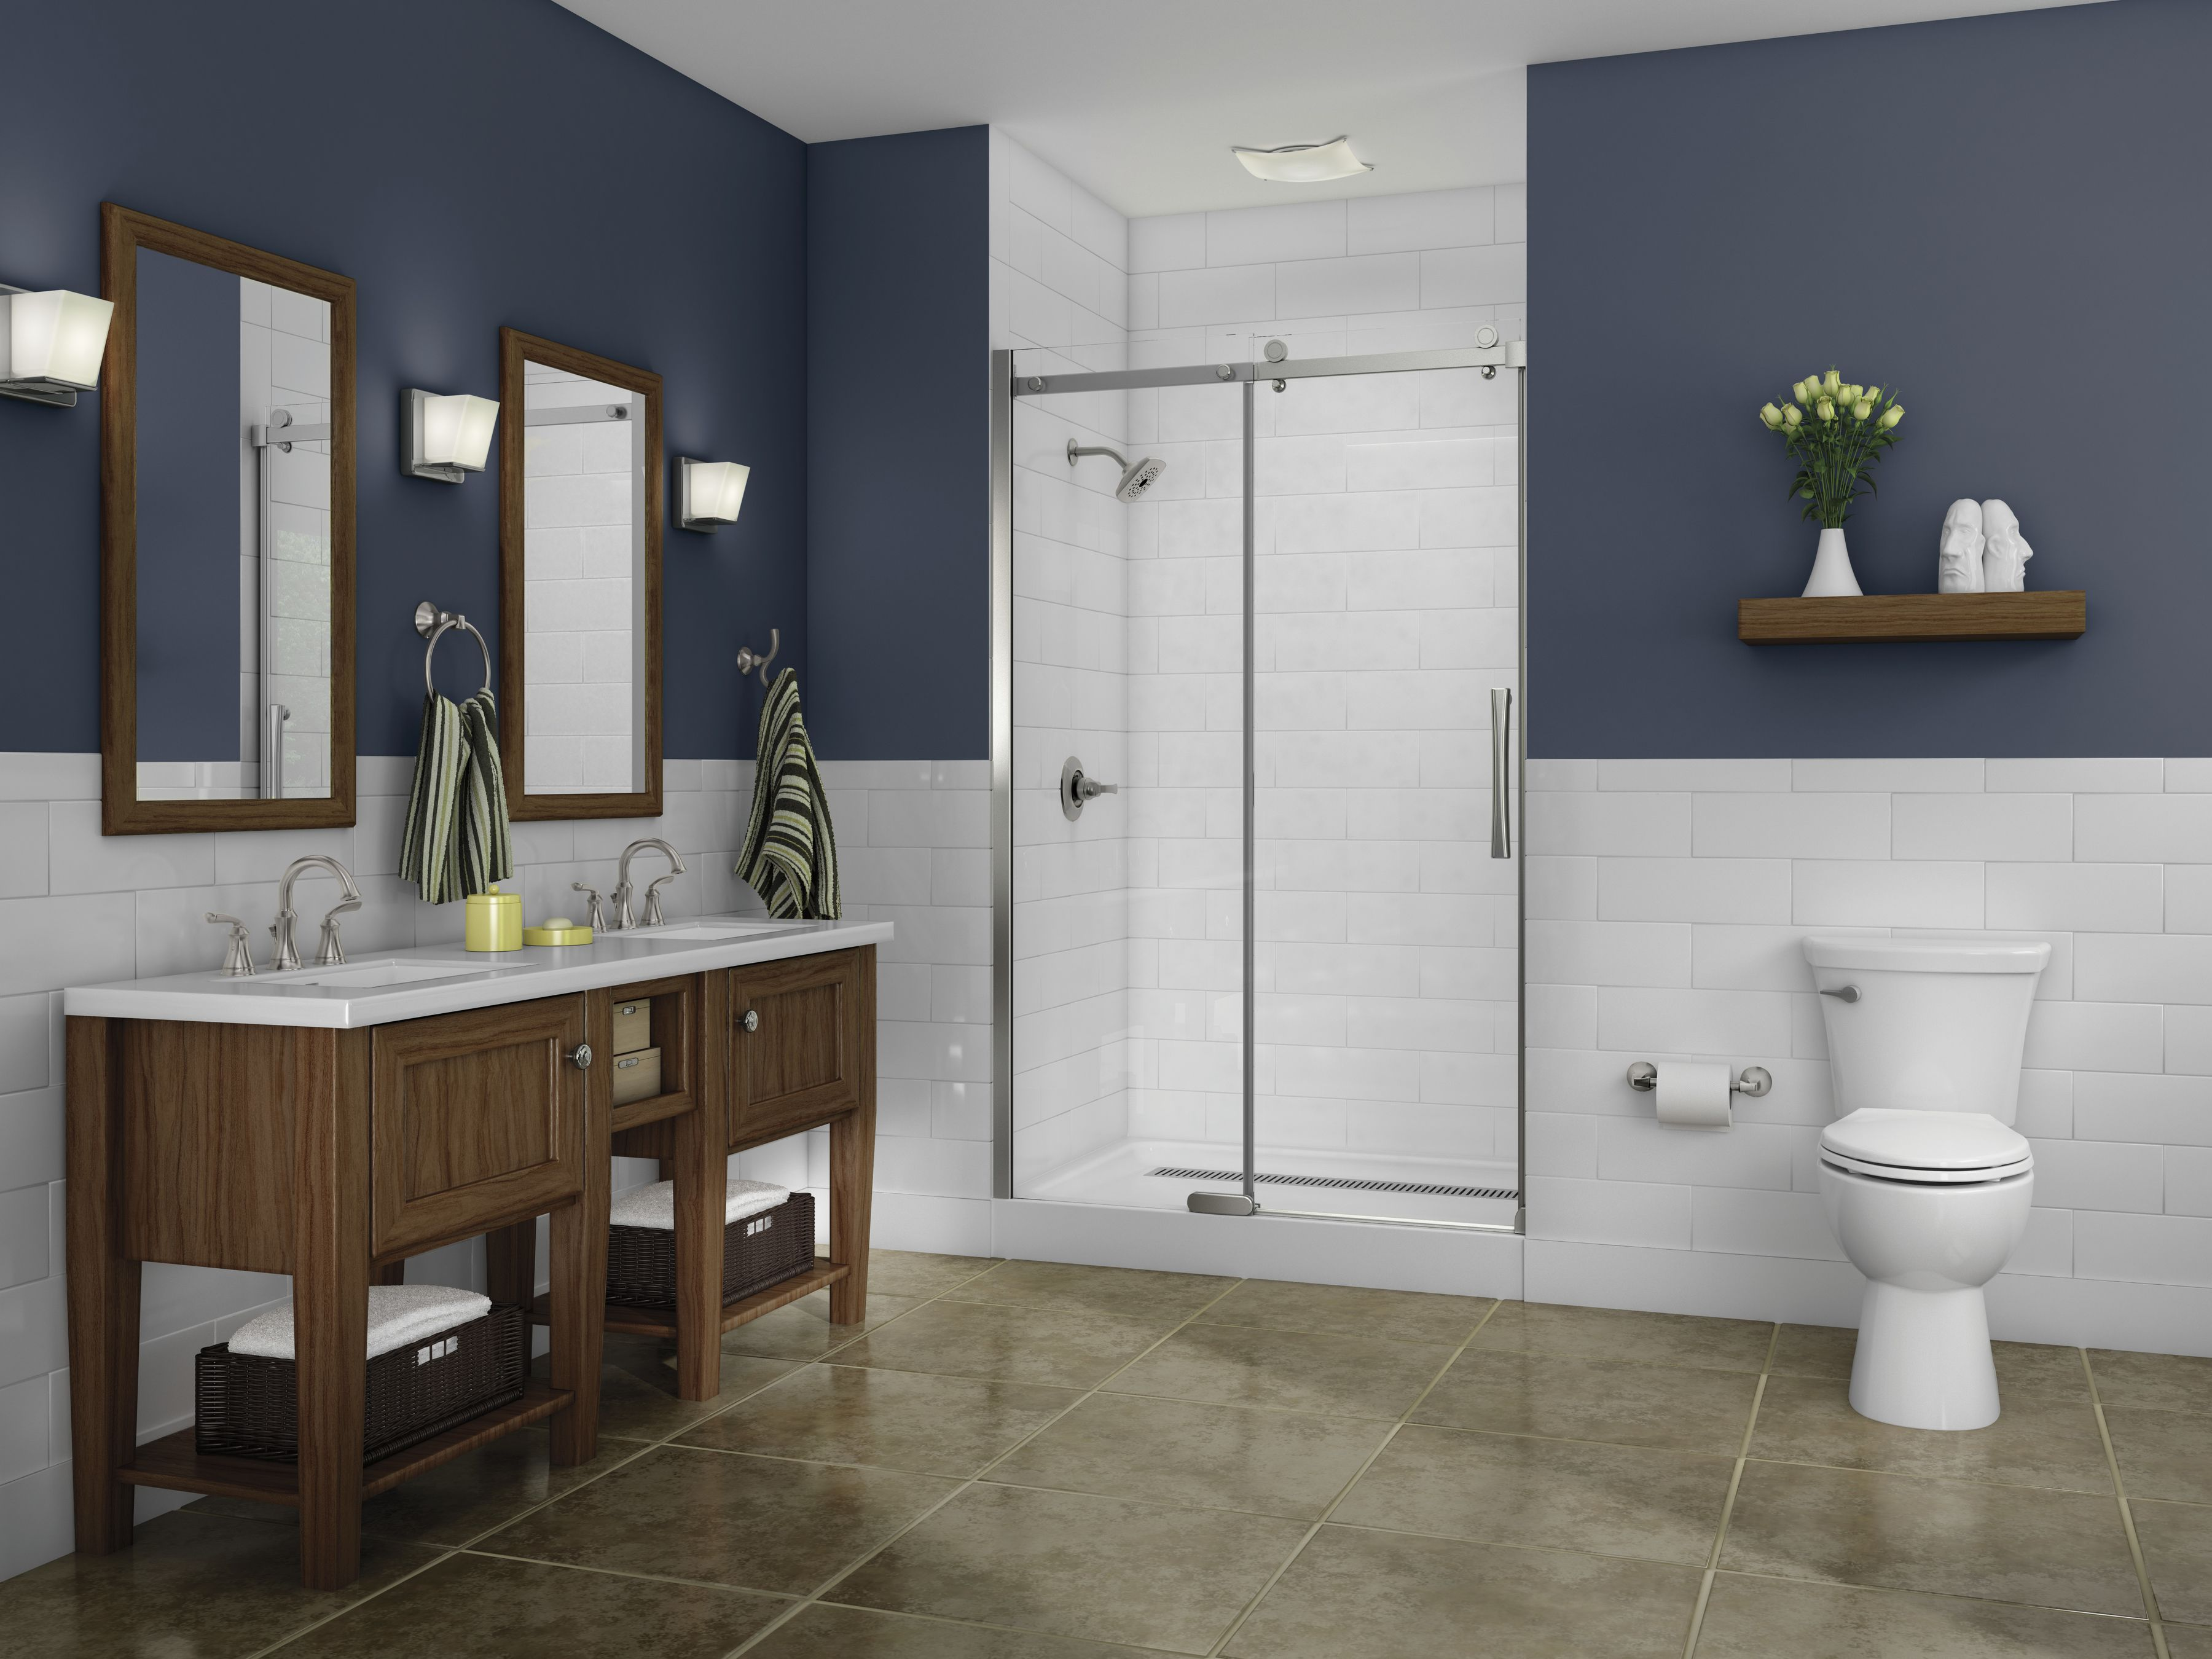 Steel Blue Bathroom With Wood Accents And White Ts Give It A Cottage Feel The